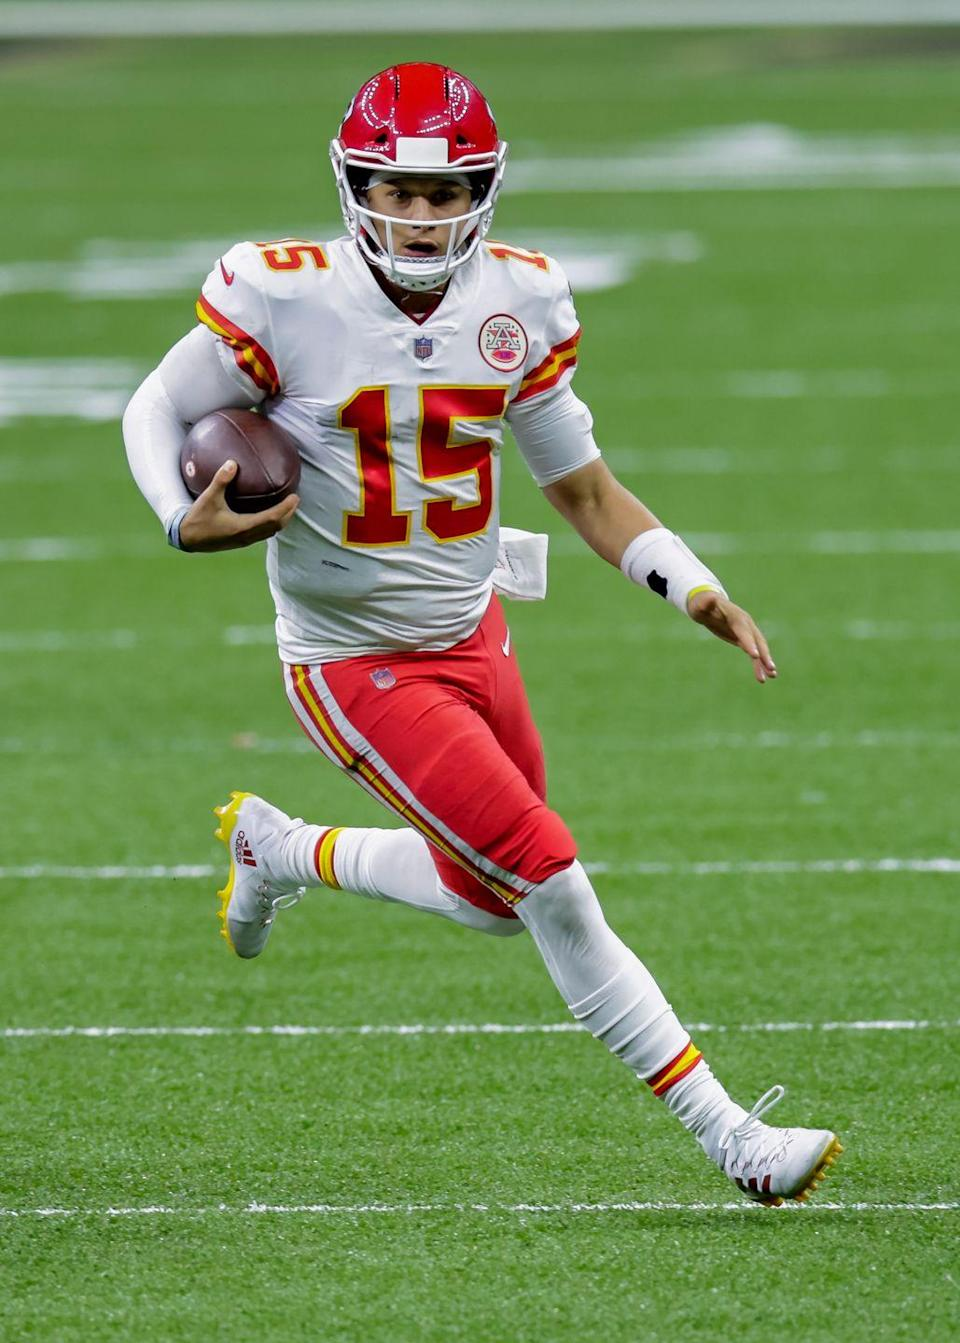 """<p>Numbers are <a href=""""https://www.battleredblog.com/2016/9/15/12924794/the-nfl-s-ridiculous-uniform-policy-illustrated"""" rel=""""nofollow noopener"""" target=""""_blank"""" data-ylk=""""slk:assigned based on a players' position"""" class=""""link rapid-noclick-resp"""">assigned based on a players' position</a>—unlike other sports, where players have the ability to choose what number they wear. For example, if you're the quarterback, you can only choose a number between 1-19. </p>"""